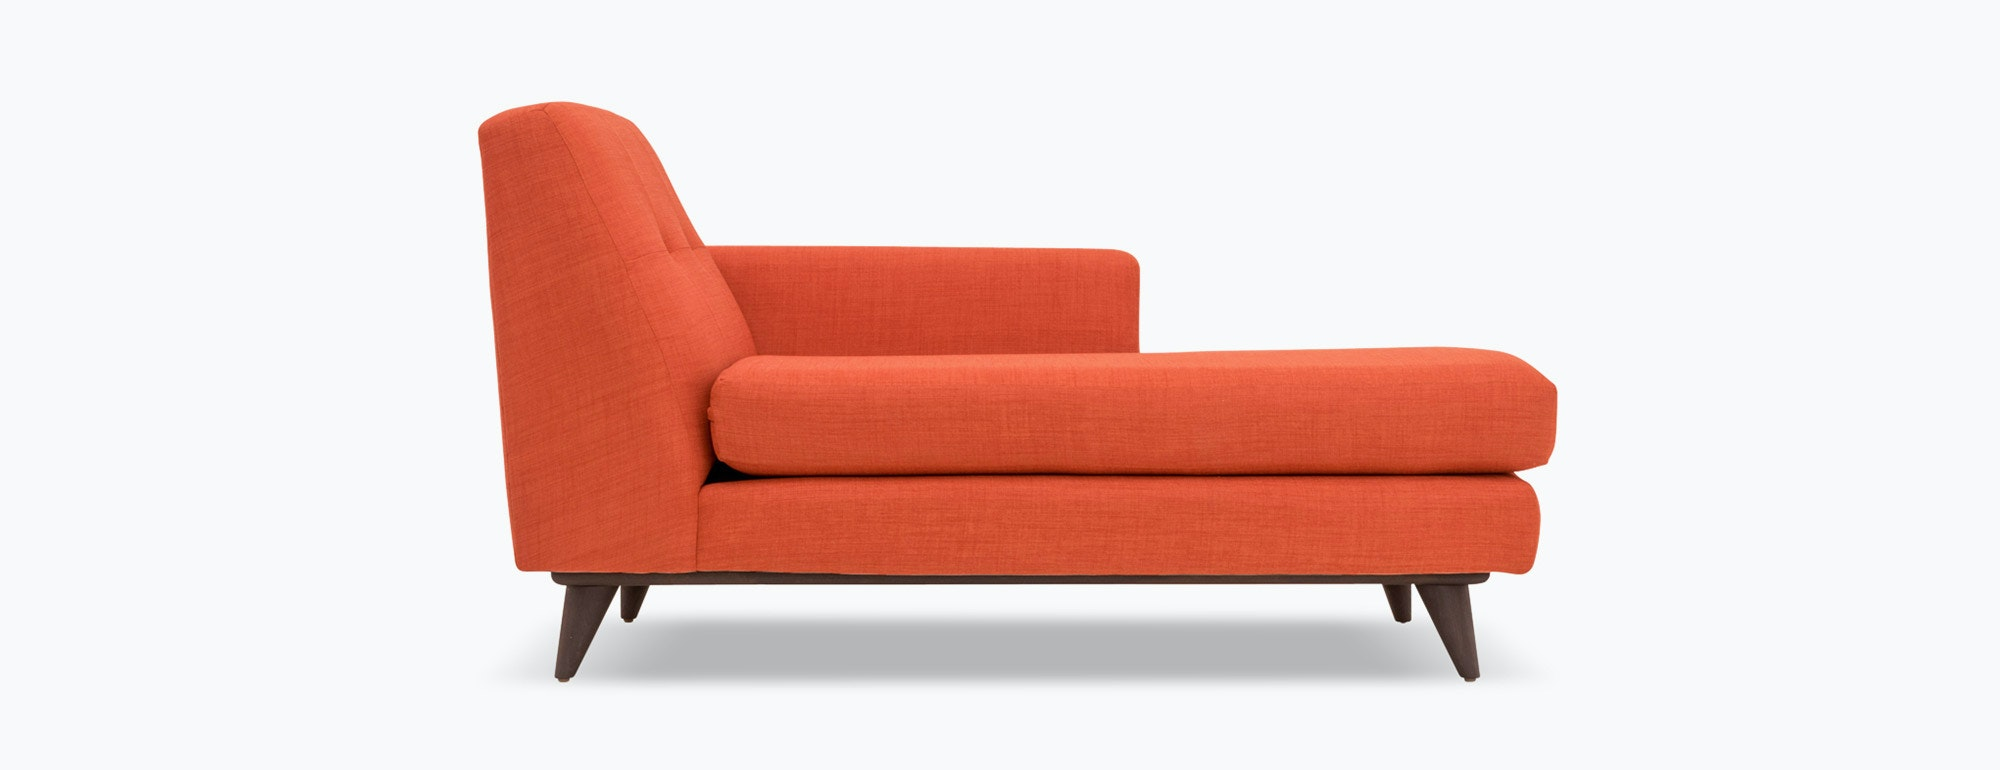 main gallery image - Chaise Orange